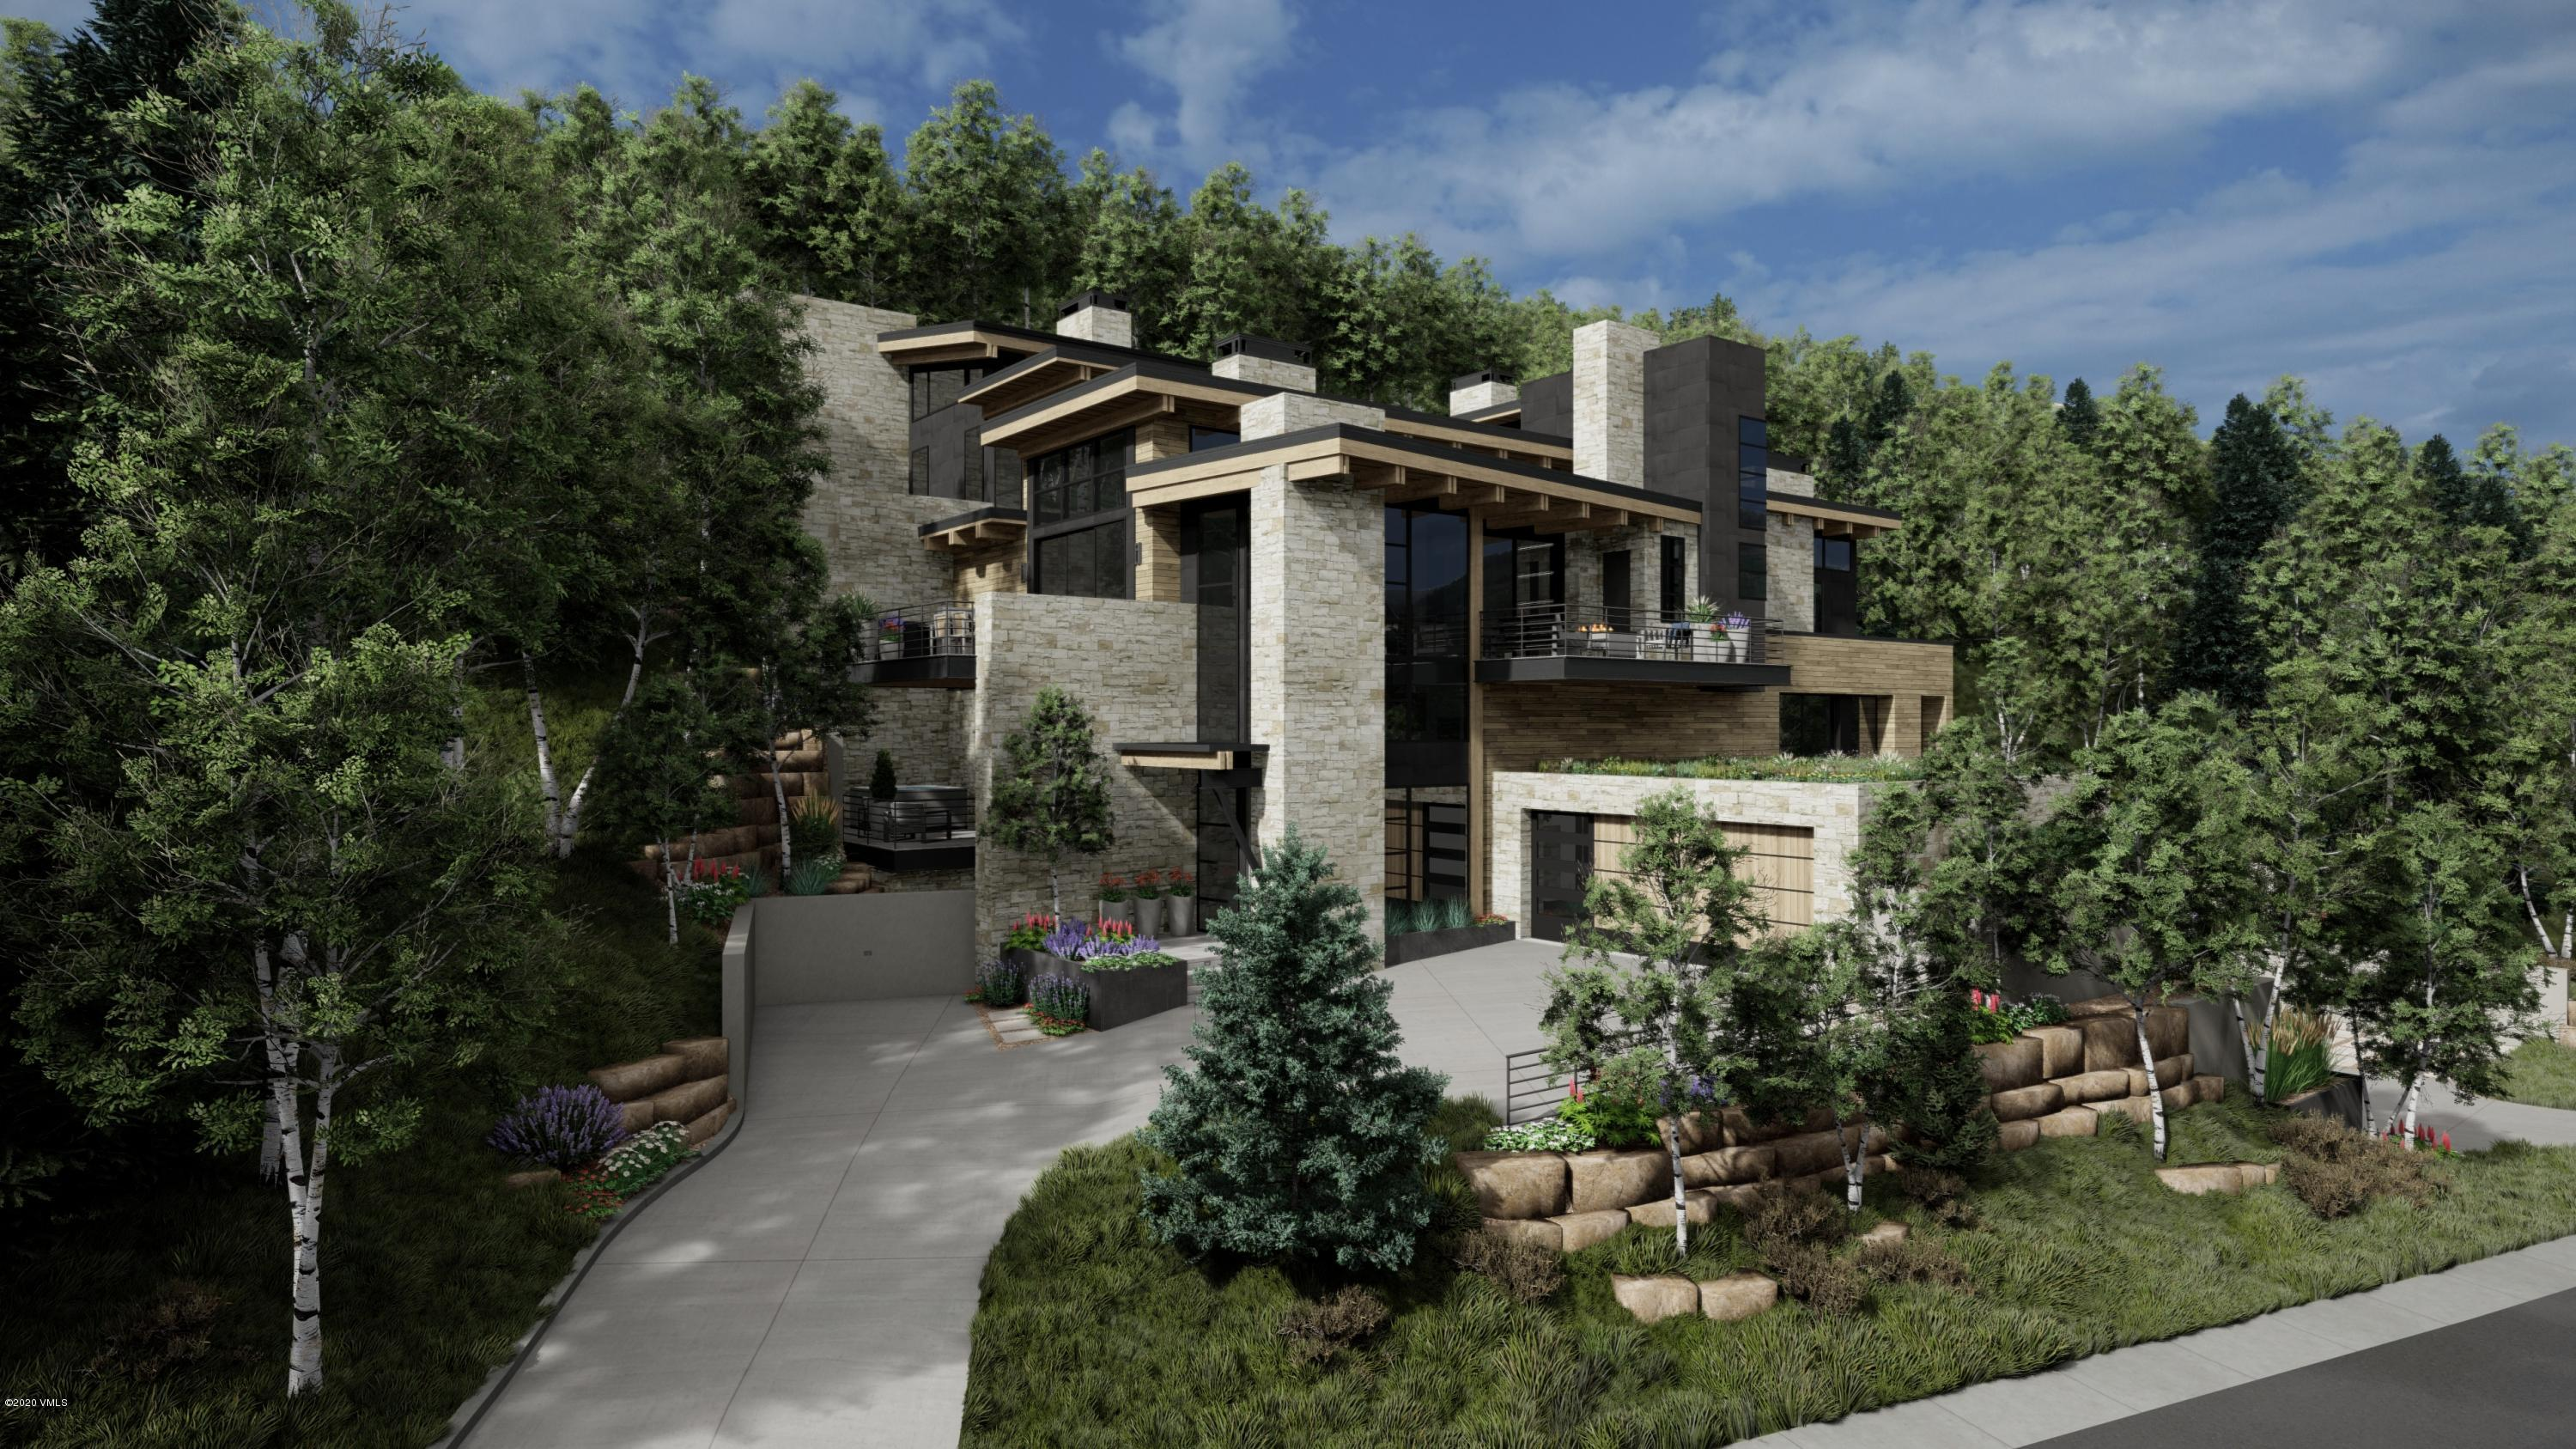 Rare opportunity to own a new construction, mountain contemporary home on the highly coveted Forest Road in Vail. Designed by Kyle Webb and built by Paragon Homes, Inc., this home offers unparalleled luxury, craftsmanship and sophistication. This modern mountain retreat features a warm aesthetic with elements of wood and stone used throughout and defined clean lines. Grand glass walls harness breathtaking views of the surrounding mountains, woodland and village of Lionshead. Located approximately 500 feet from the Born Free ski run, the location is prime especially for those that love tree skiing or for those who wish to briefly ski down to the Lionshead Gondola, about 600 feet away. Encompassing 4,454 square feet of living space, there are four bedrooms, five bathrooms and several outdoor patios.  With the driveway and all deck surfaces heated efficiently, all will enjoy the beauty of the outdoor dining area year-round. The refined kitchen with gorgeous Italian cabinetry and state of the art appliances open to the living and dining areas. With elevated views, sun-filled interiors, this open floorplan masterfully accommodates for entertaining and family fun. Offering four levels of luxurious living, every room is an experience in and of itself with excellent views and attention to detail. The master bedroom was designed to provide ultimate privacy while still encapsulating the beauty of the outdoor landscape with its own spacious patio and surrounding aspen trees. Enter the mudroom after a day of skiing Vail's world-famous powder or hiking in the White River National Forest. Outfitted with built-in ski racks, cabinets, boot dryers and shelving, you can easily organize gear and equipment for family & friends. Nestled in the mountainside, enjoy this new mountain-chic architecture that is luxurious, yet inviting for your family & guests to enjoy. Estimated completion January 2022.Please view mls-670.ForestRoadLuxury.com for complete details. Note, the taxes & exact acr